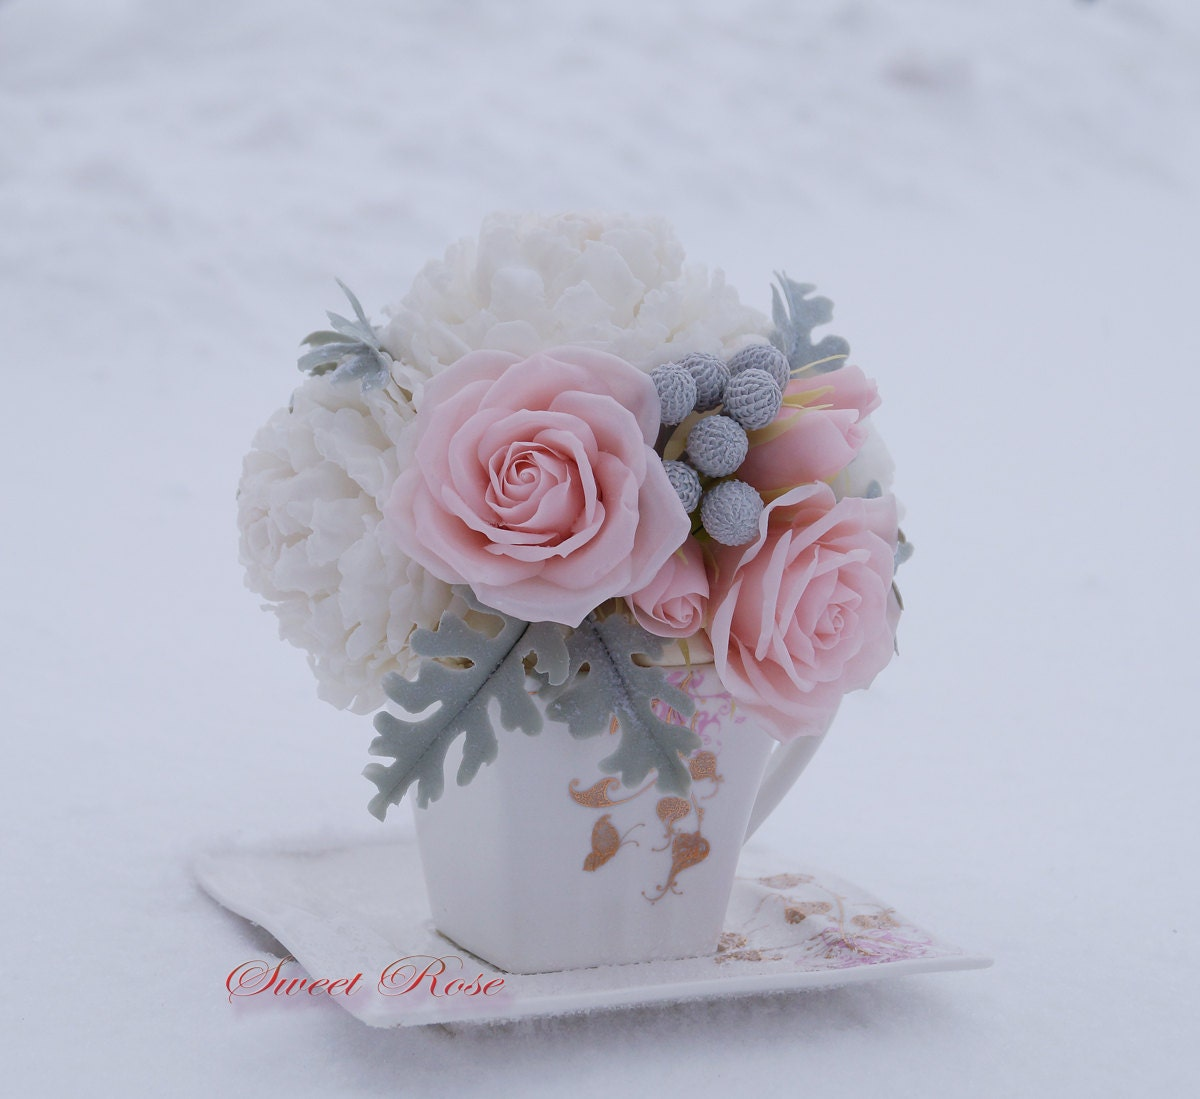 Cold porcelain flowers